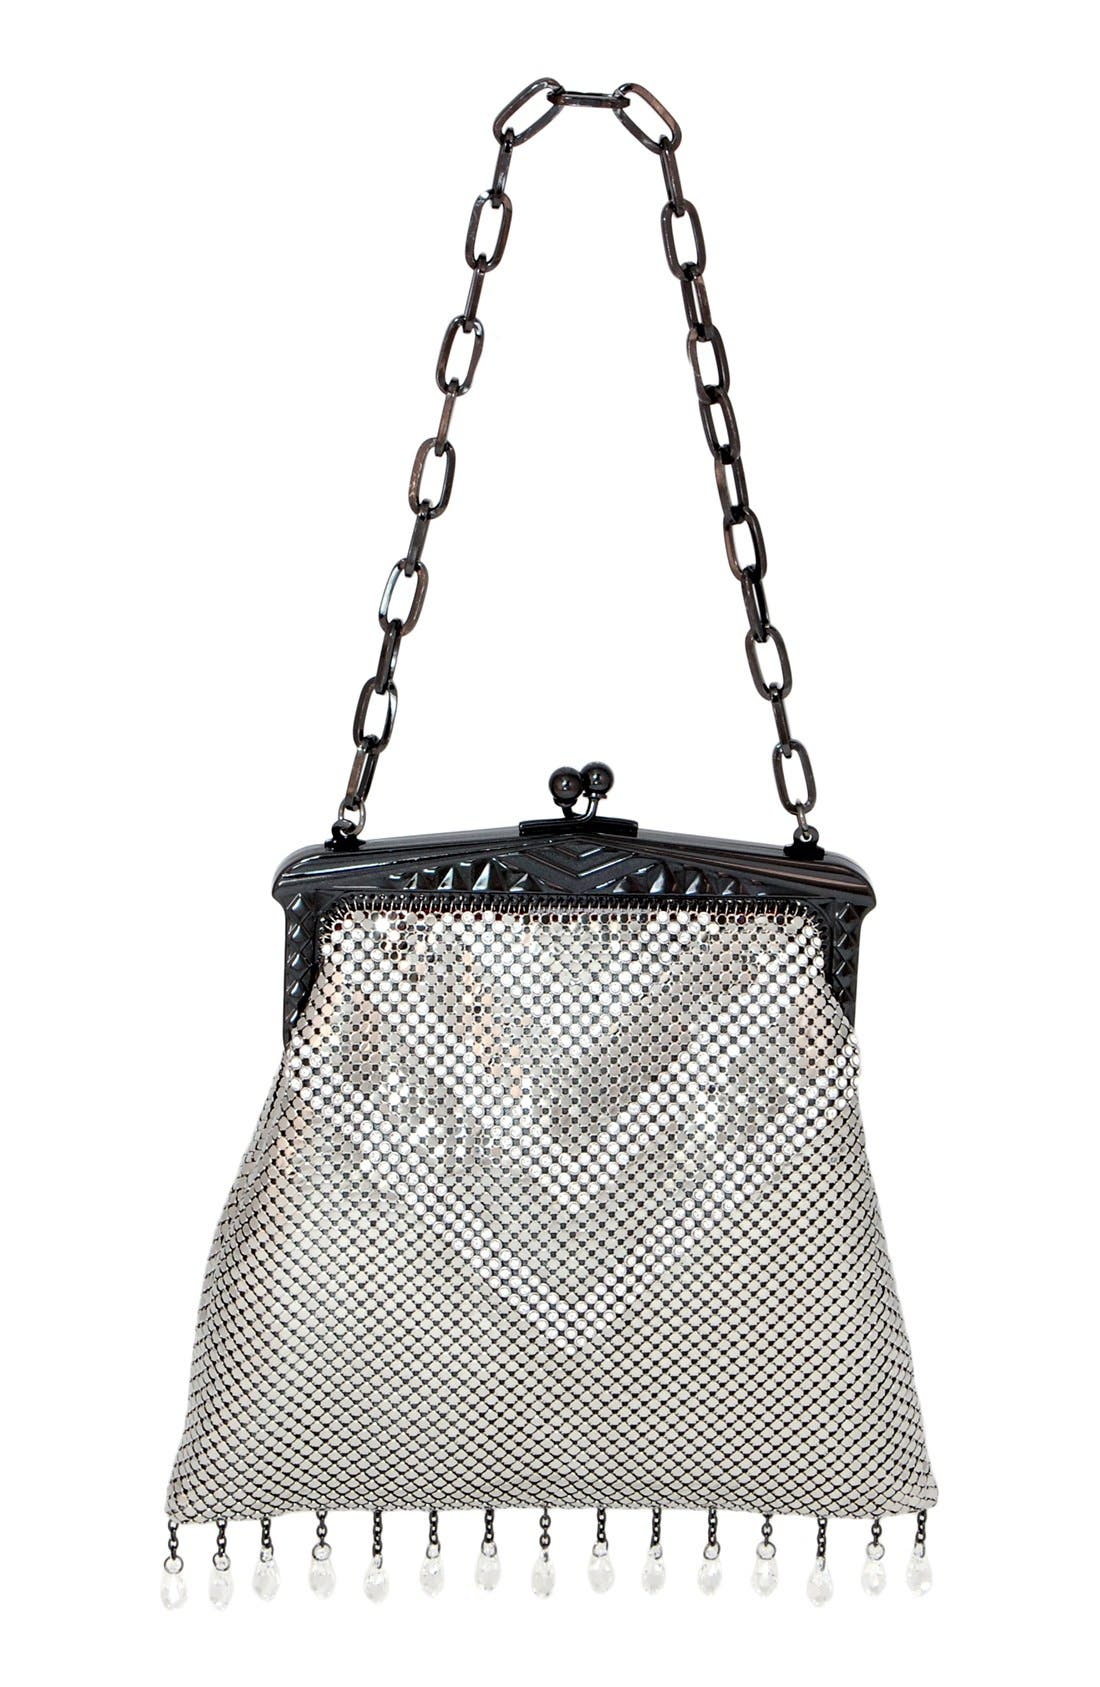 WHITING & DAVIS 'Heritage - Deco' Mesh Clutch